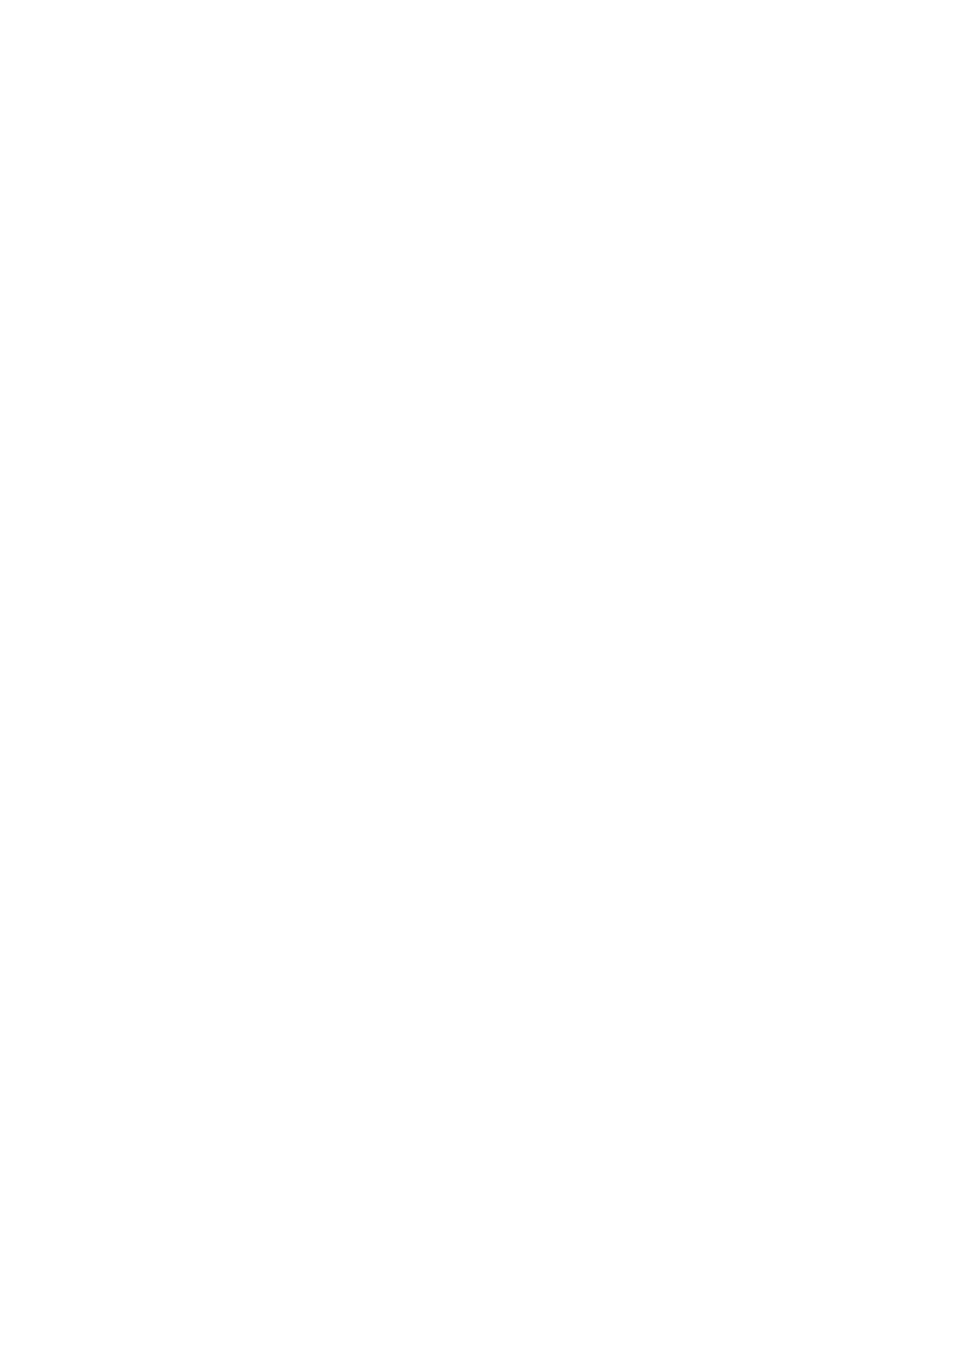 motorola minitor v user manual page 11 17 original mode rh manualsdir com motorola minitor iv manual motorola minitor v owners manual